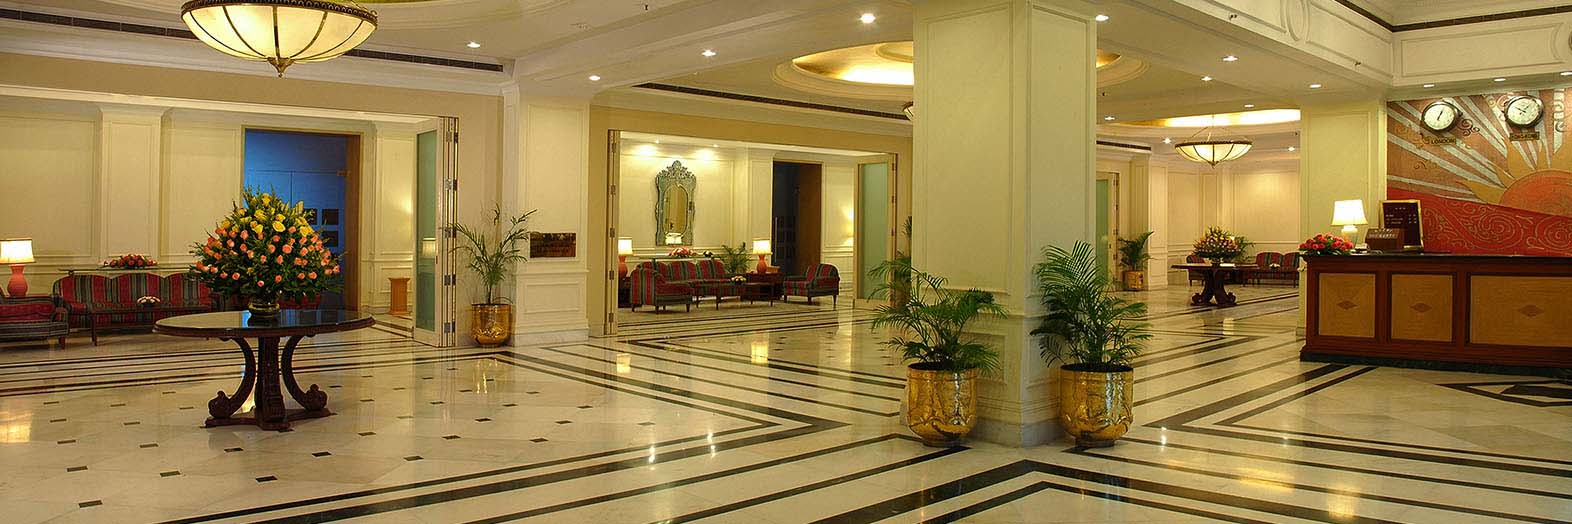 Services and Facilities in Indore